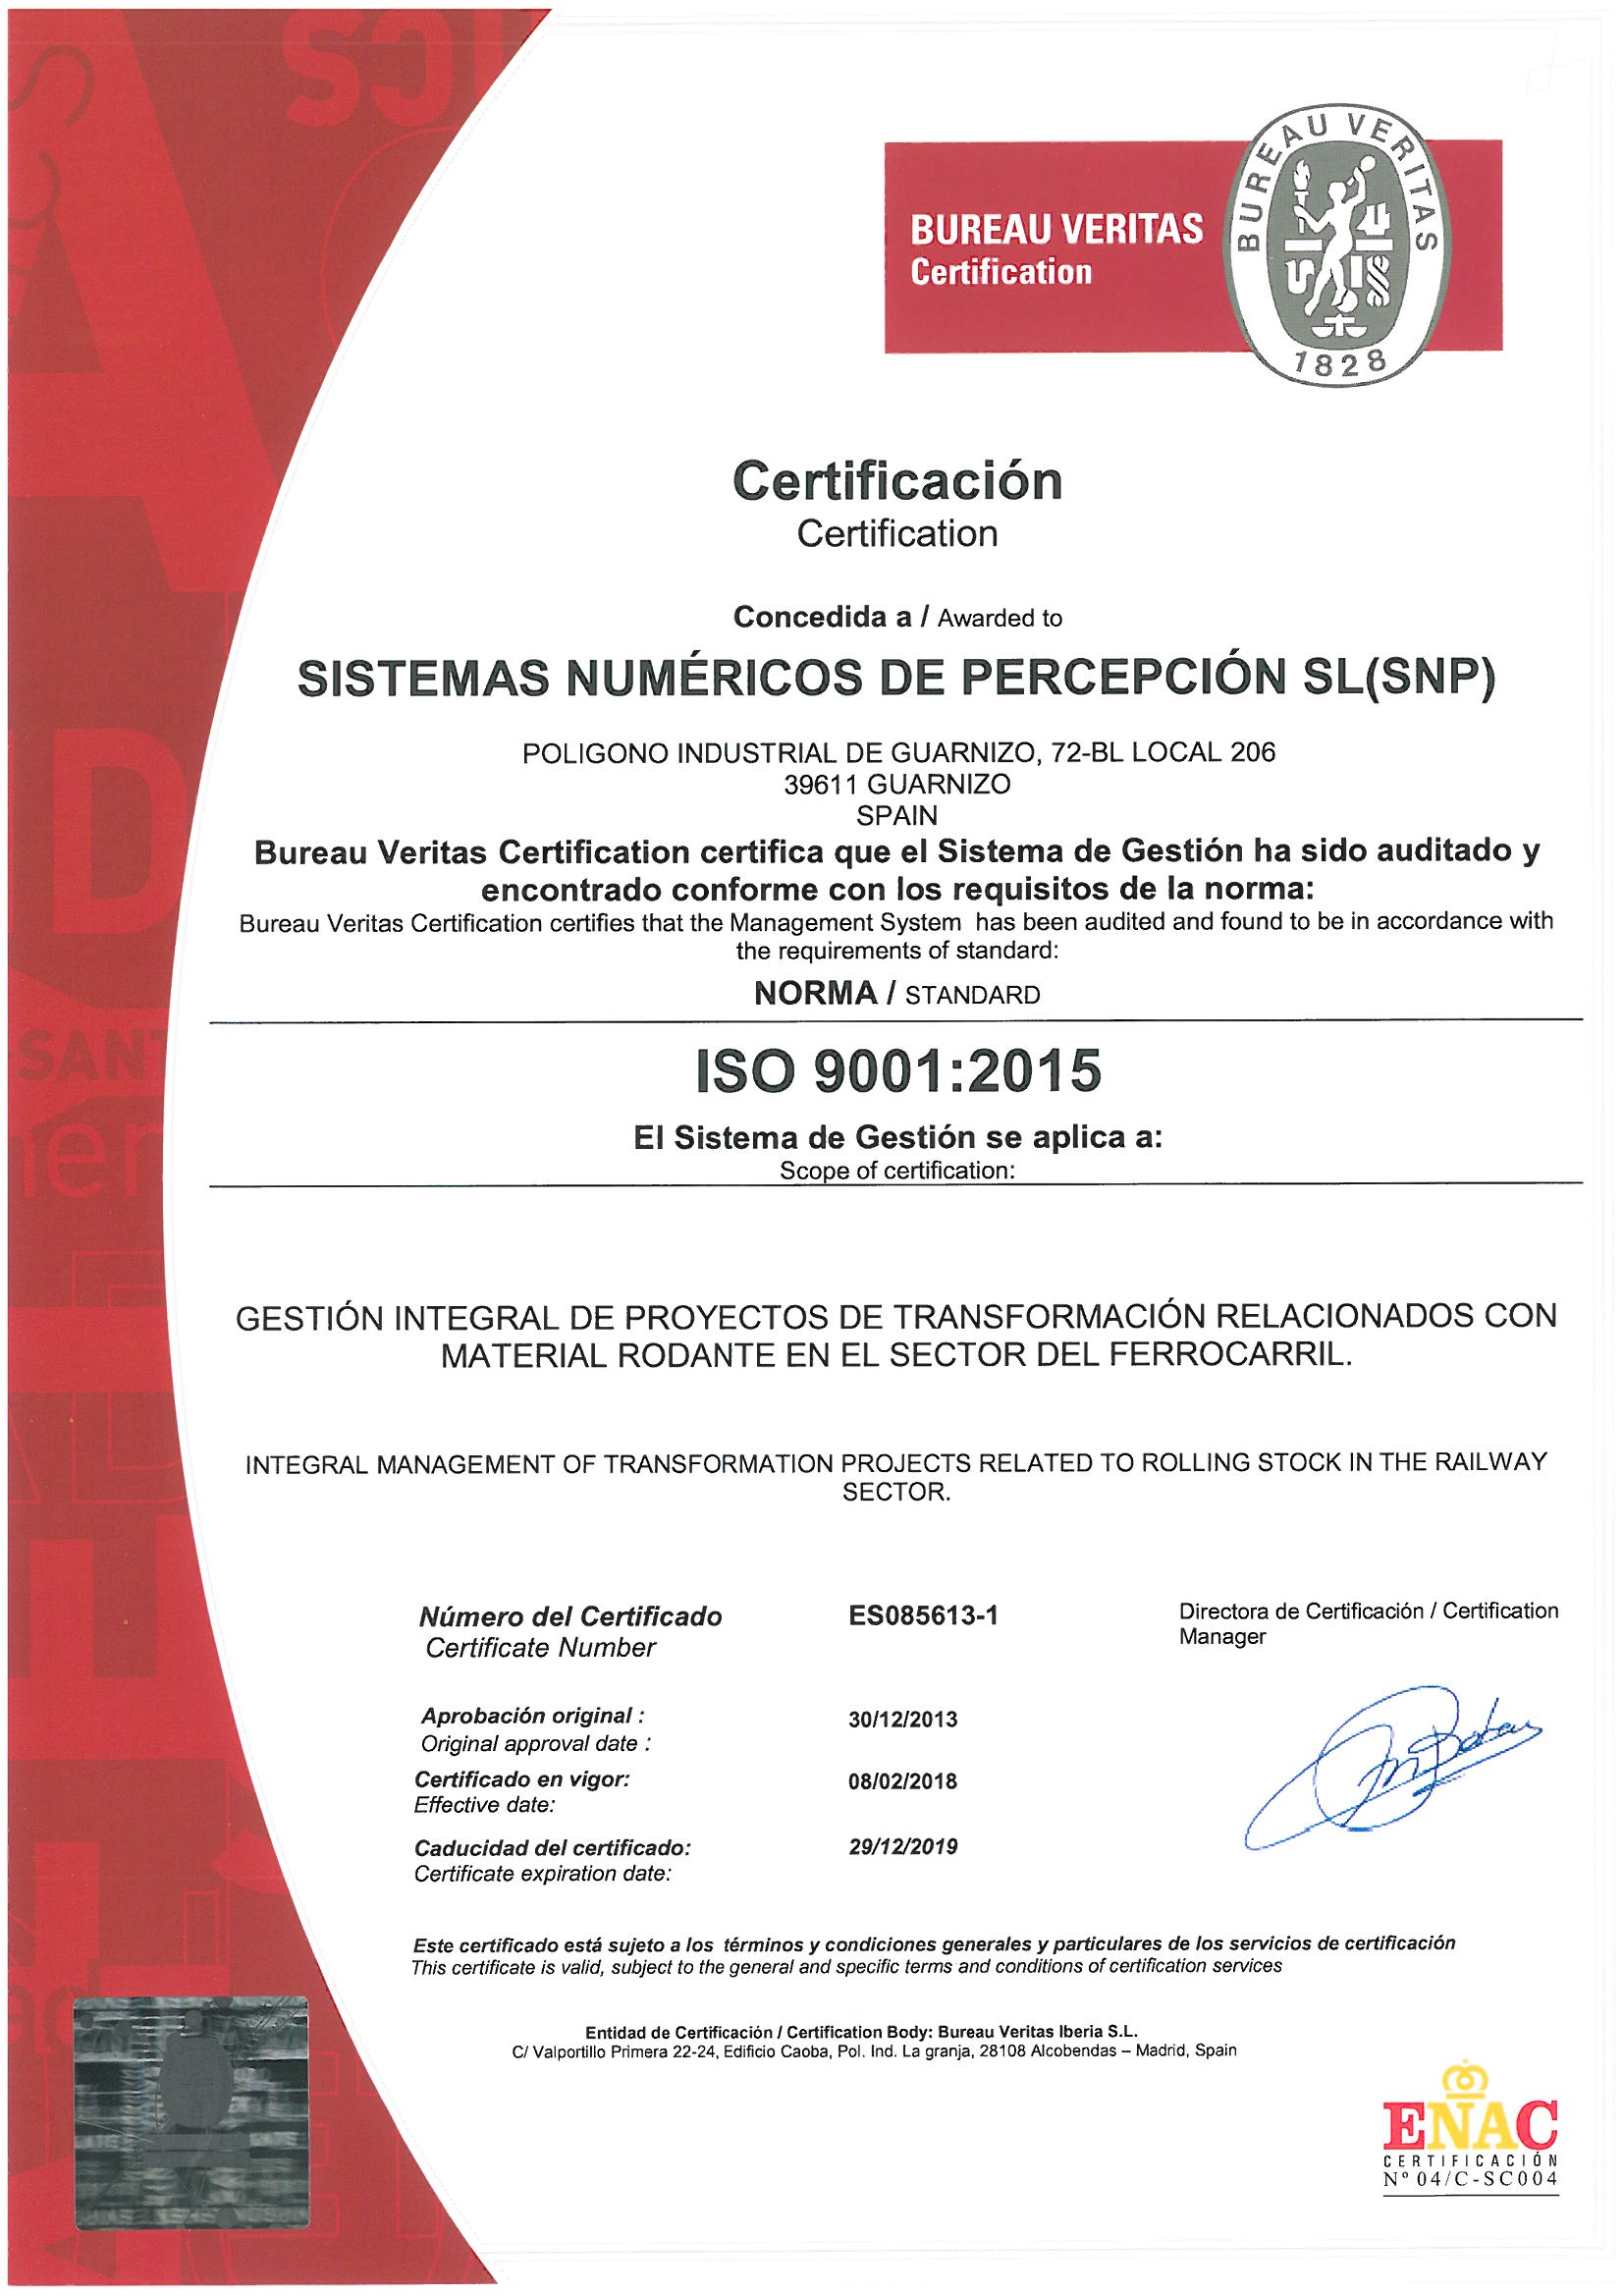 Quality Assurance Certification To Iso 9001